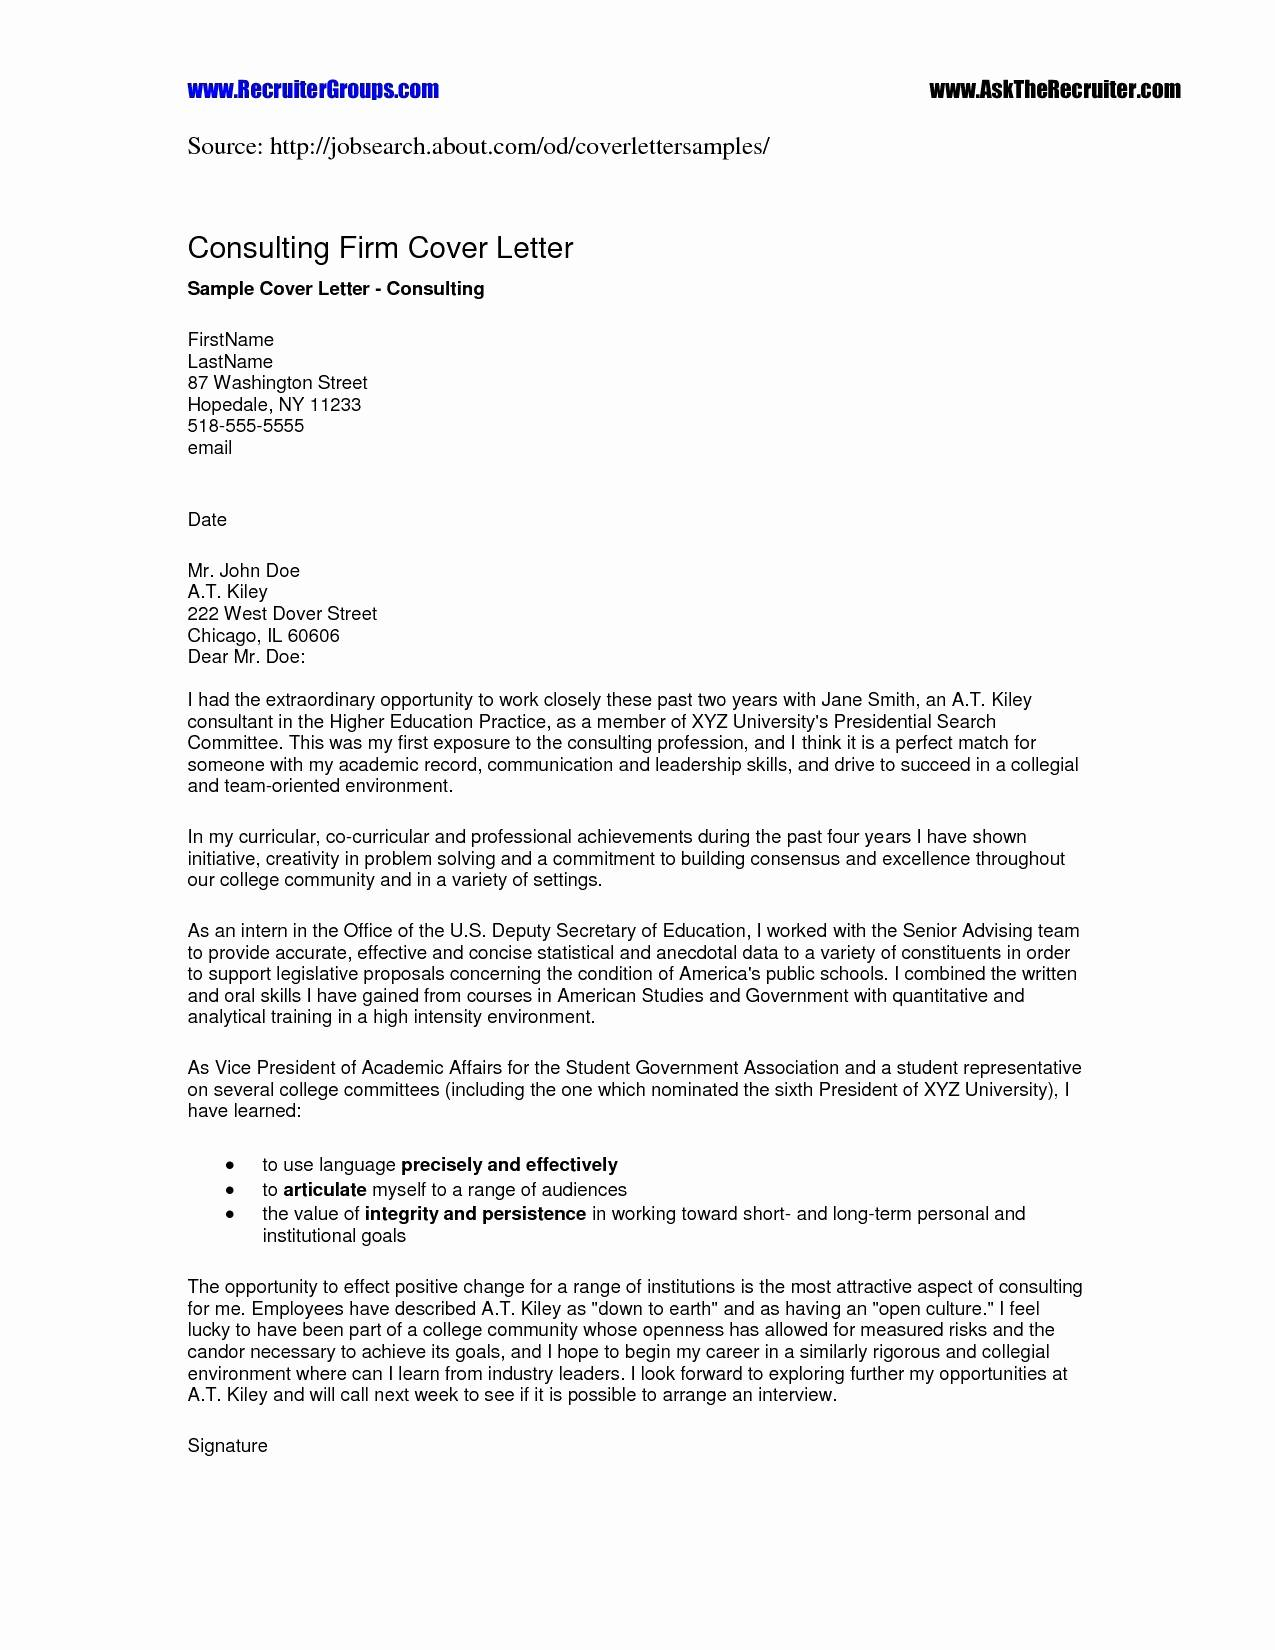 Debt Collection Template Letter Free - Debt Collection Letter Templates Free Fresh Debt Collection Letter